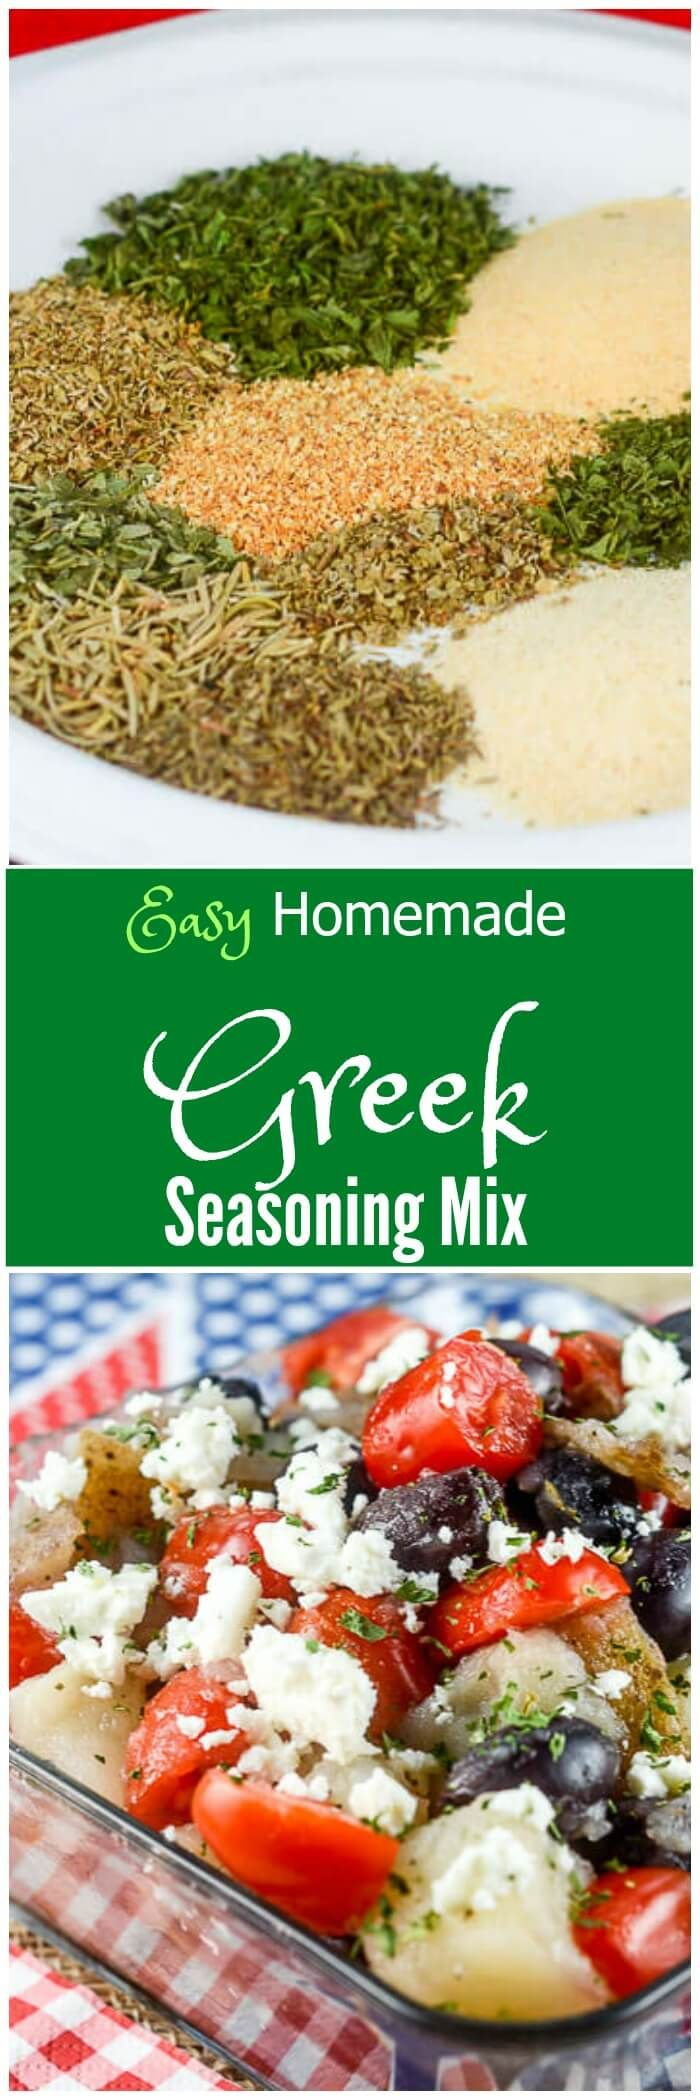 This Easy Homemade Greek Seasoning Mix recipeis a budget friendly option to add bold Greek flavors to your favorite dishes or recipes. via @flavormosaic